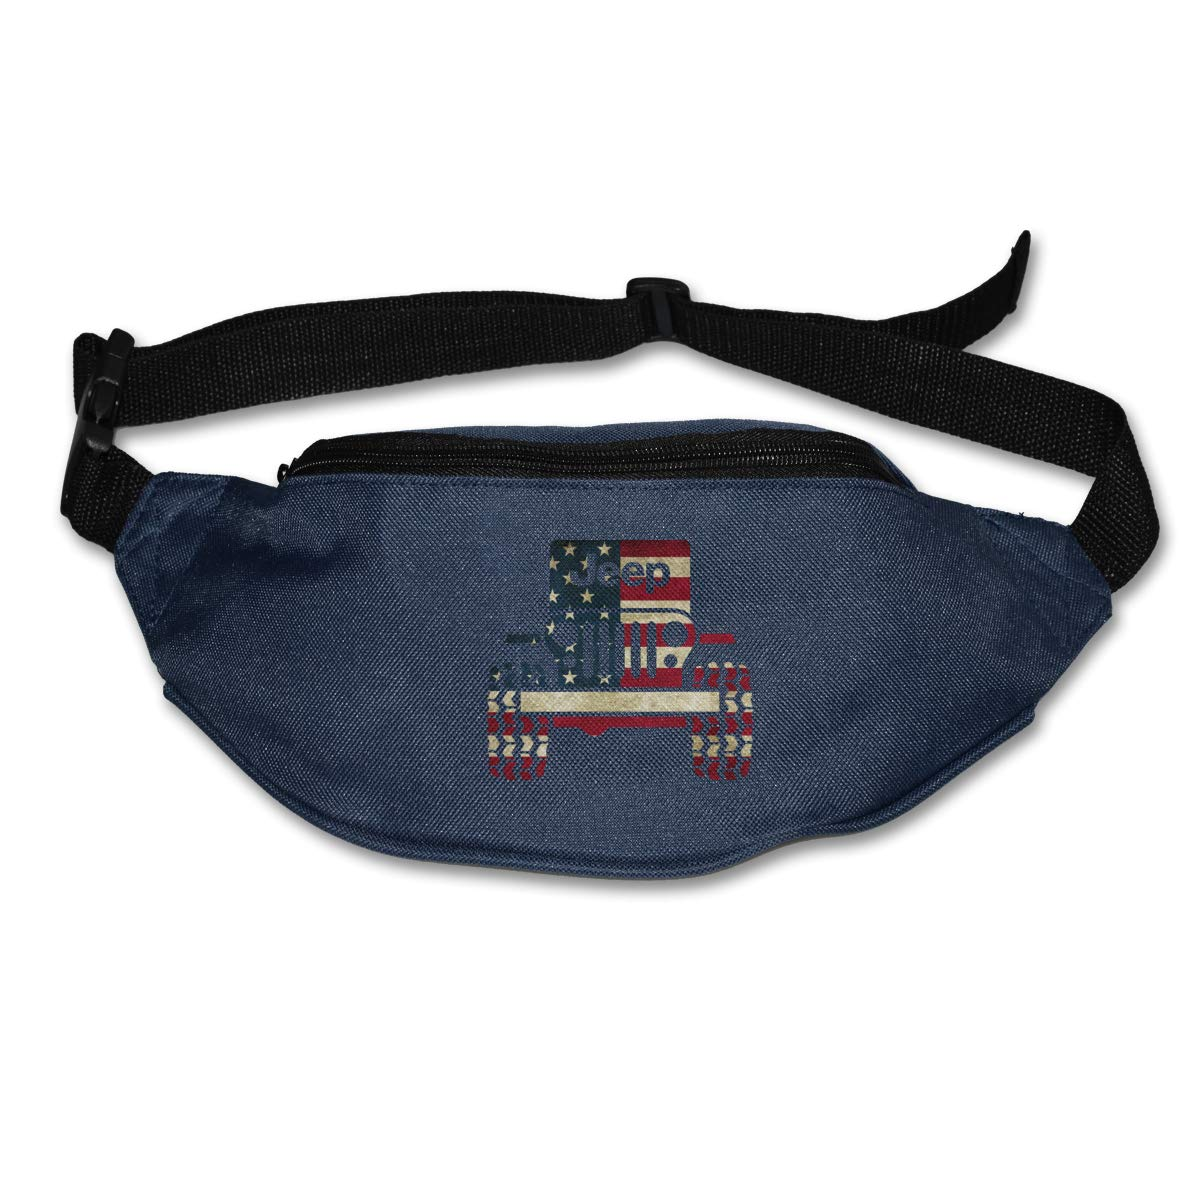 Jeep American Flag Sport Waist Packs Fanny Pack Adjustable For Travel